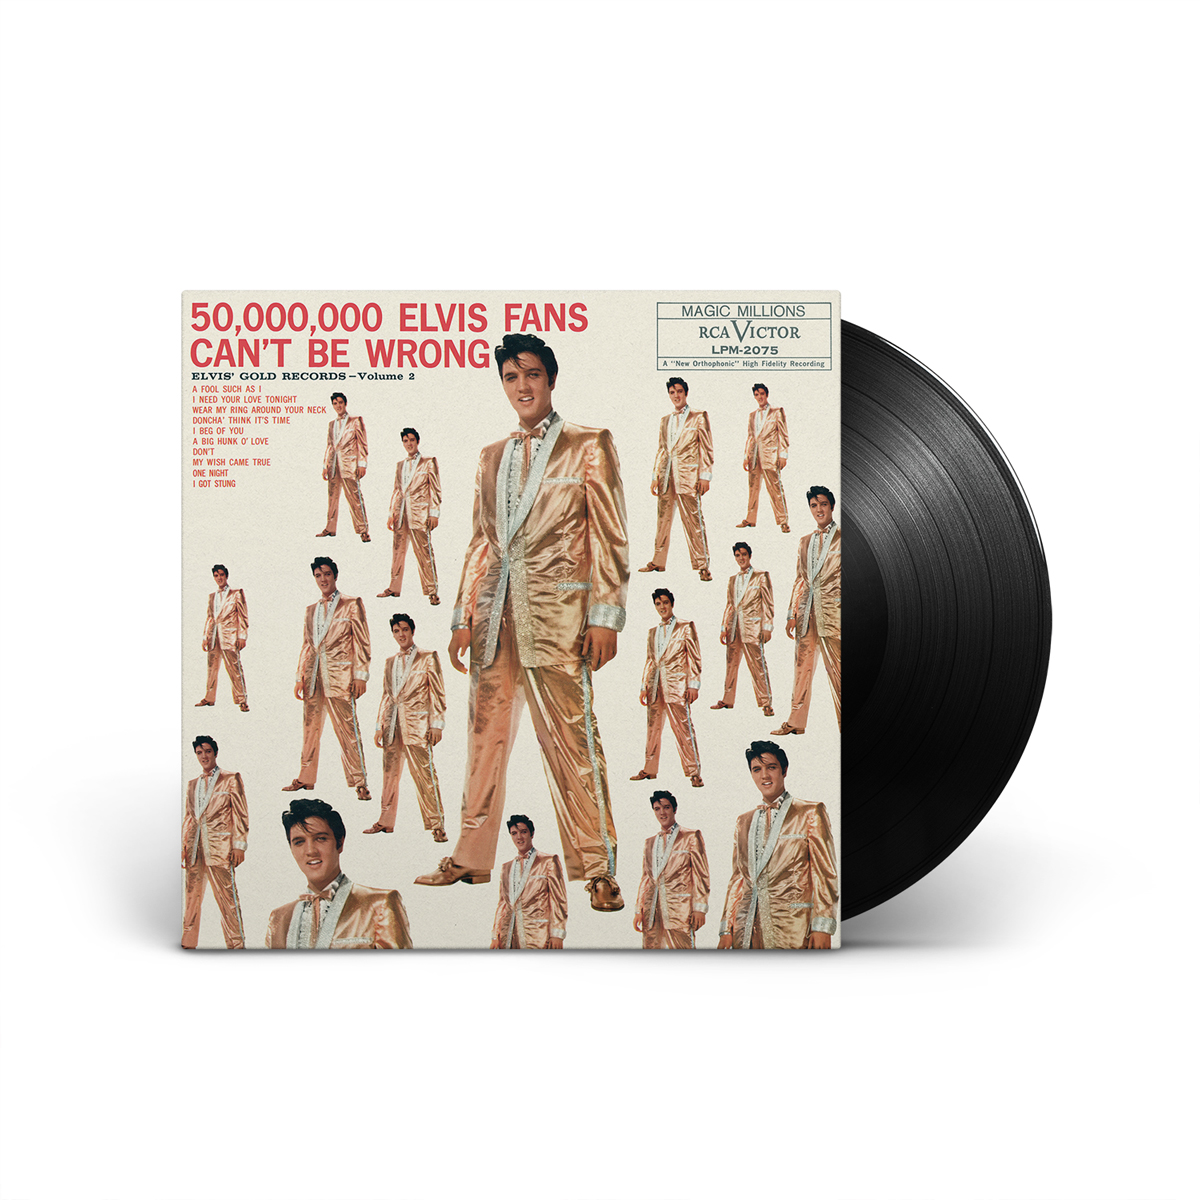 50,000,000 ELVIS FANS CAN'T BE WRONG: ELVIS' GOLD RECORDS, VOLUME 2